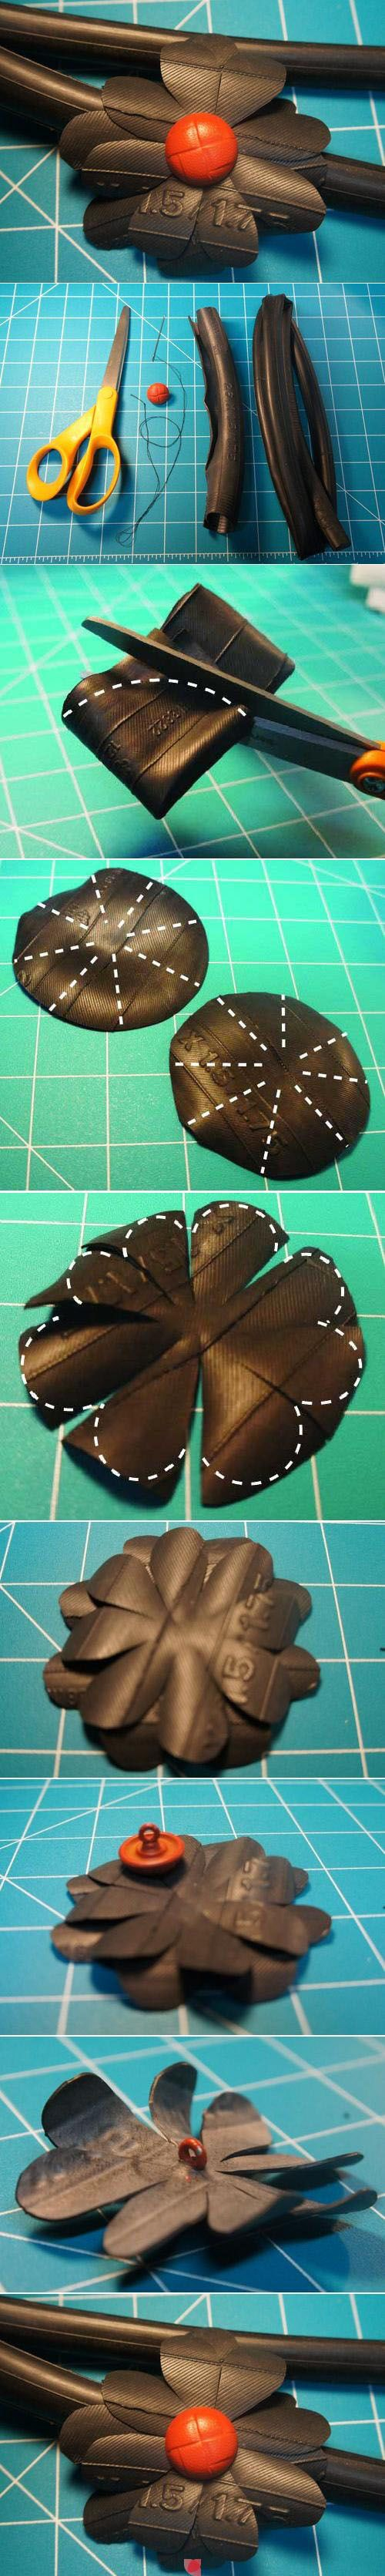 how to cut flowers from #bicycle #innertube